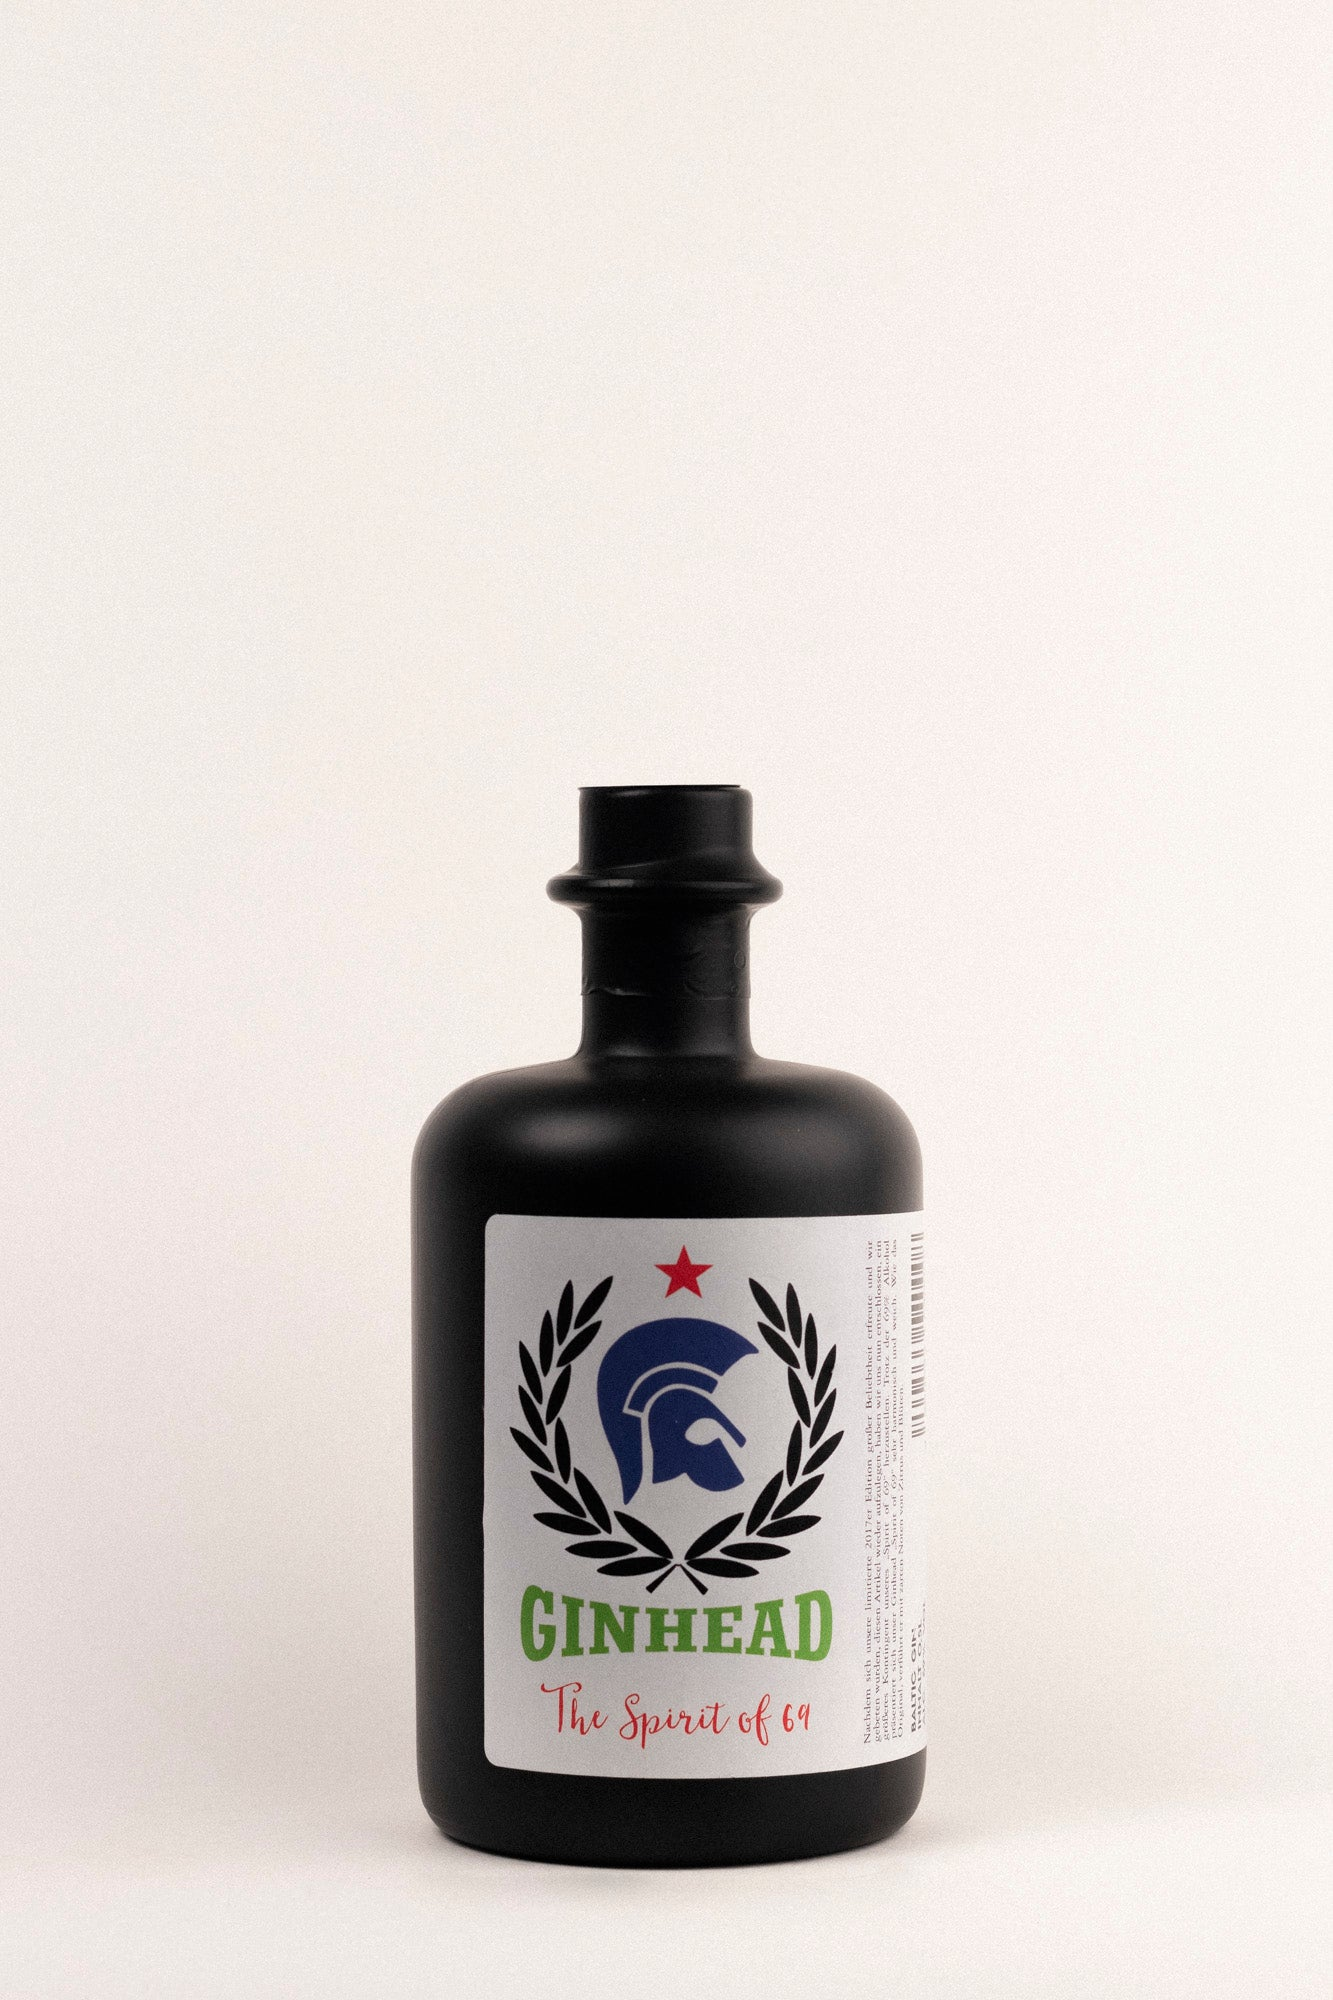 Ginhead Spirit of 69 Gin, 500ml